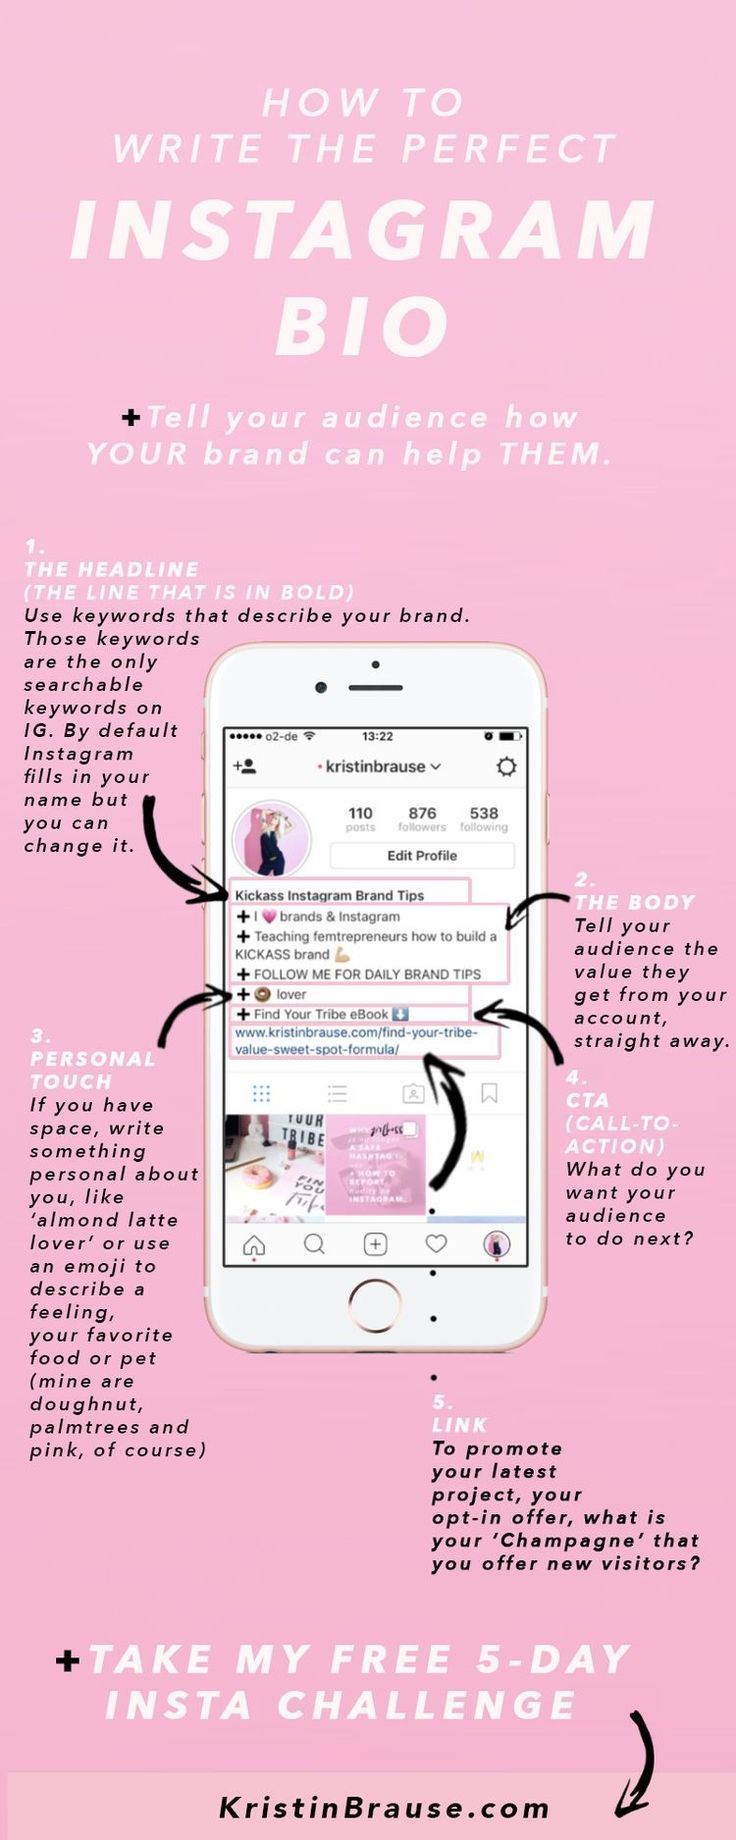 How to write the perfect Instagram bio and tell you